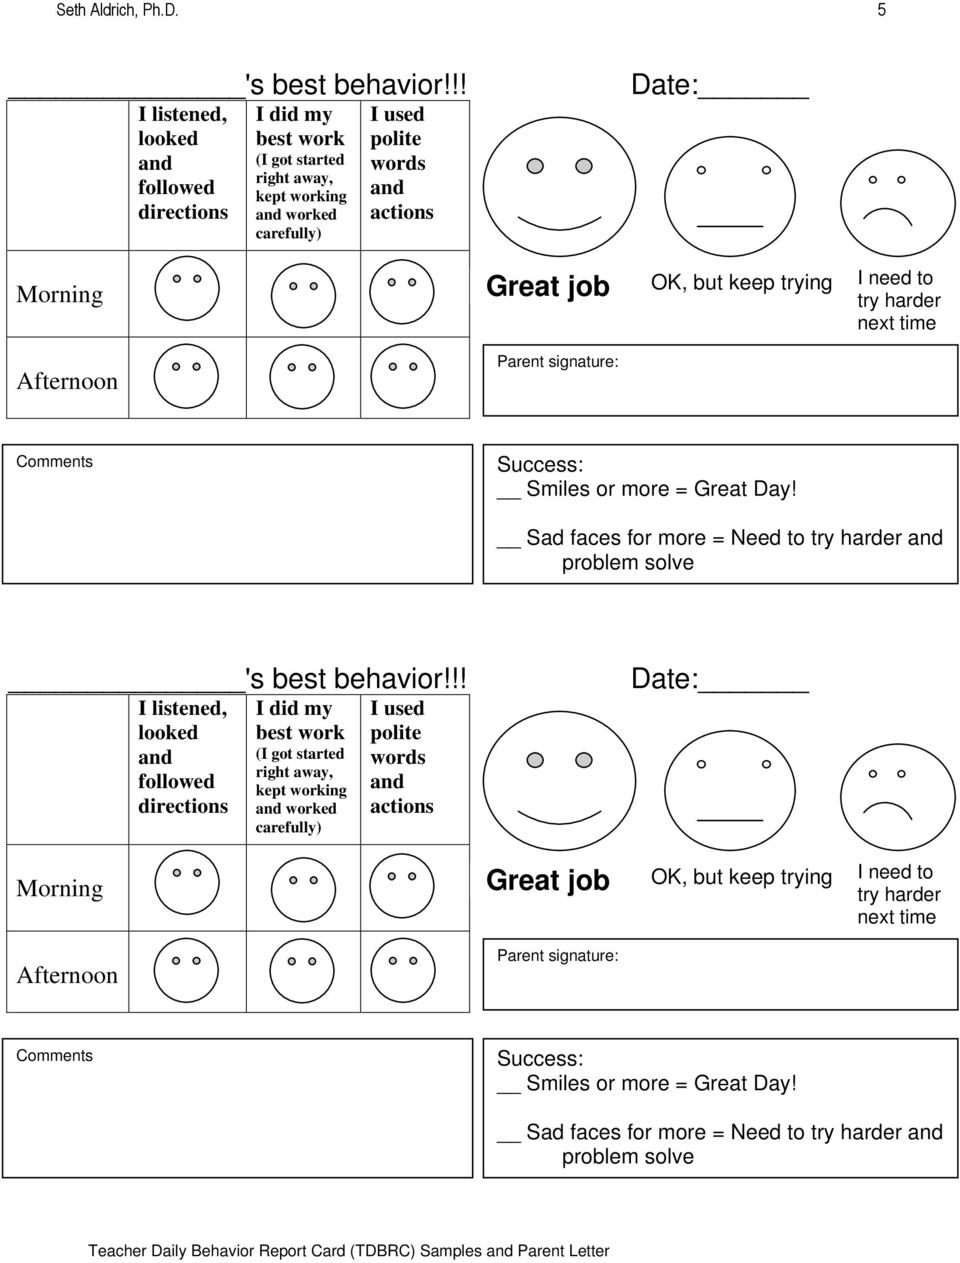 ! OK, but keep trying I need to try harder next time Afternoon Parent signature: Comments Success: Smiles or more = Great Day! Sad faces for more = Need to try harder problem solve 's best behavior!